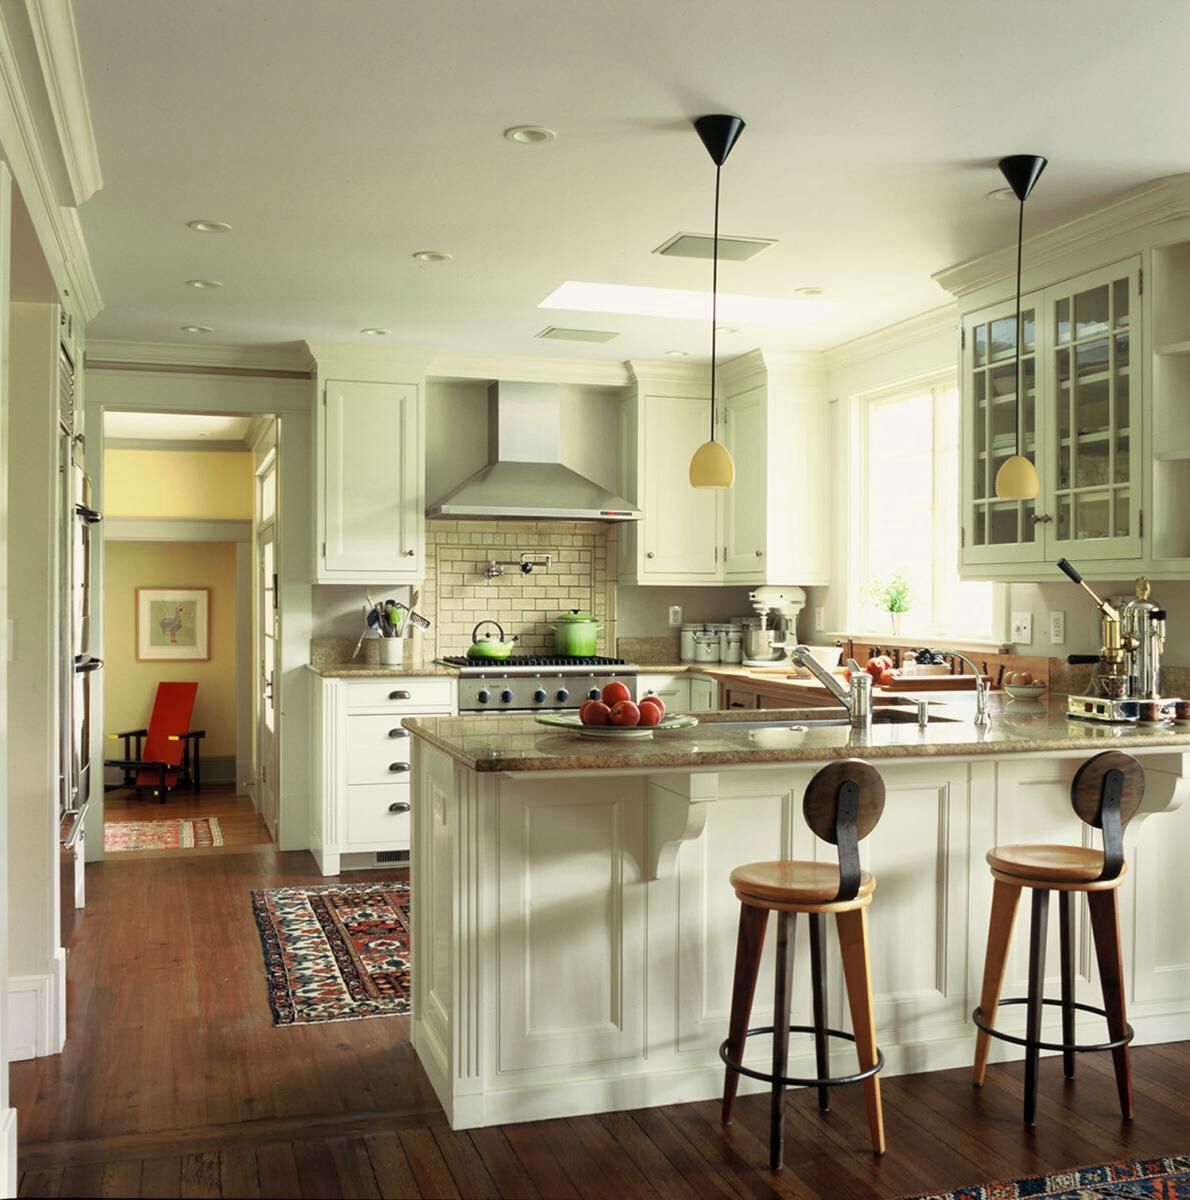 Pinterest farm kitchens joy studio design gallery best design - Kitchen cabinets pinterest ...